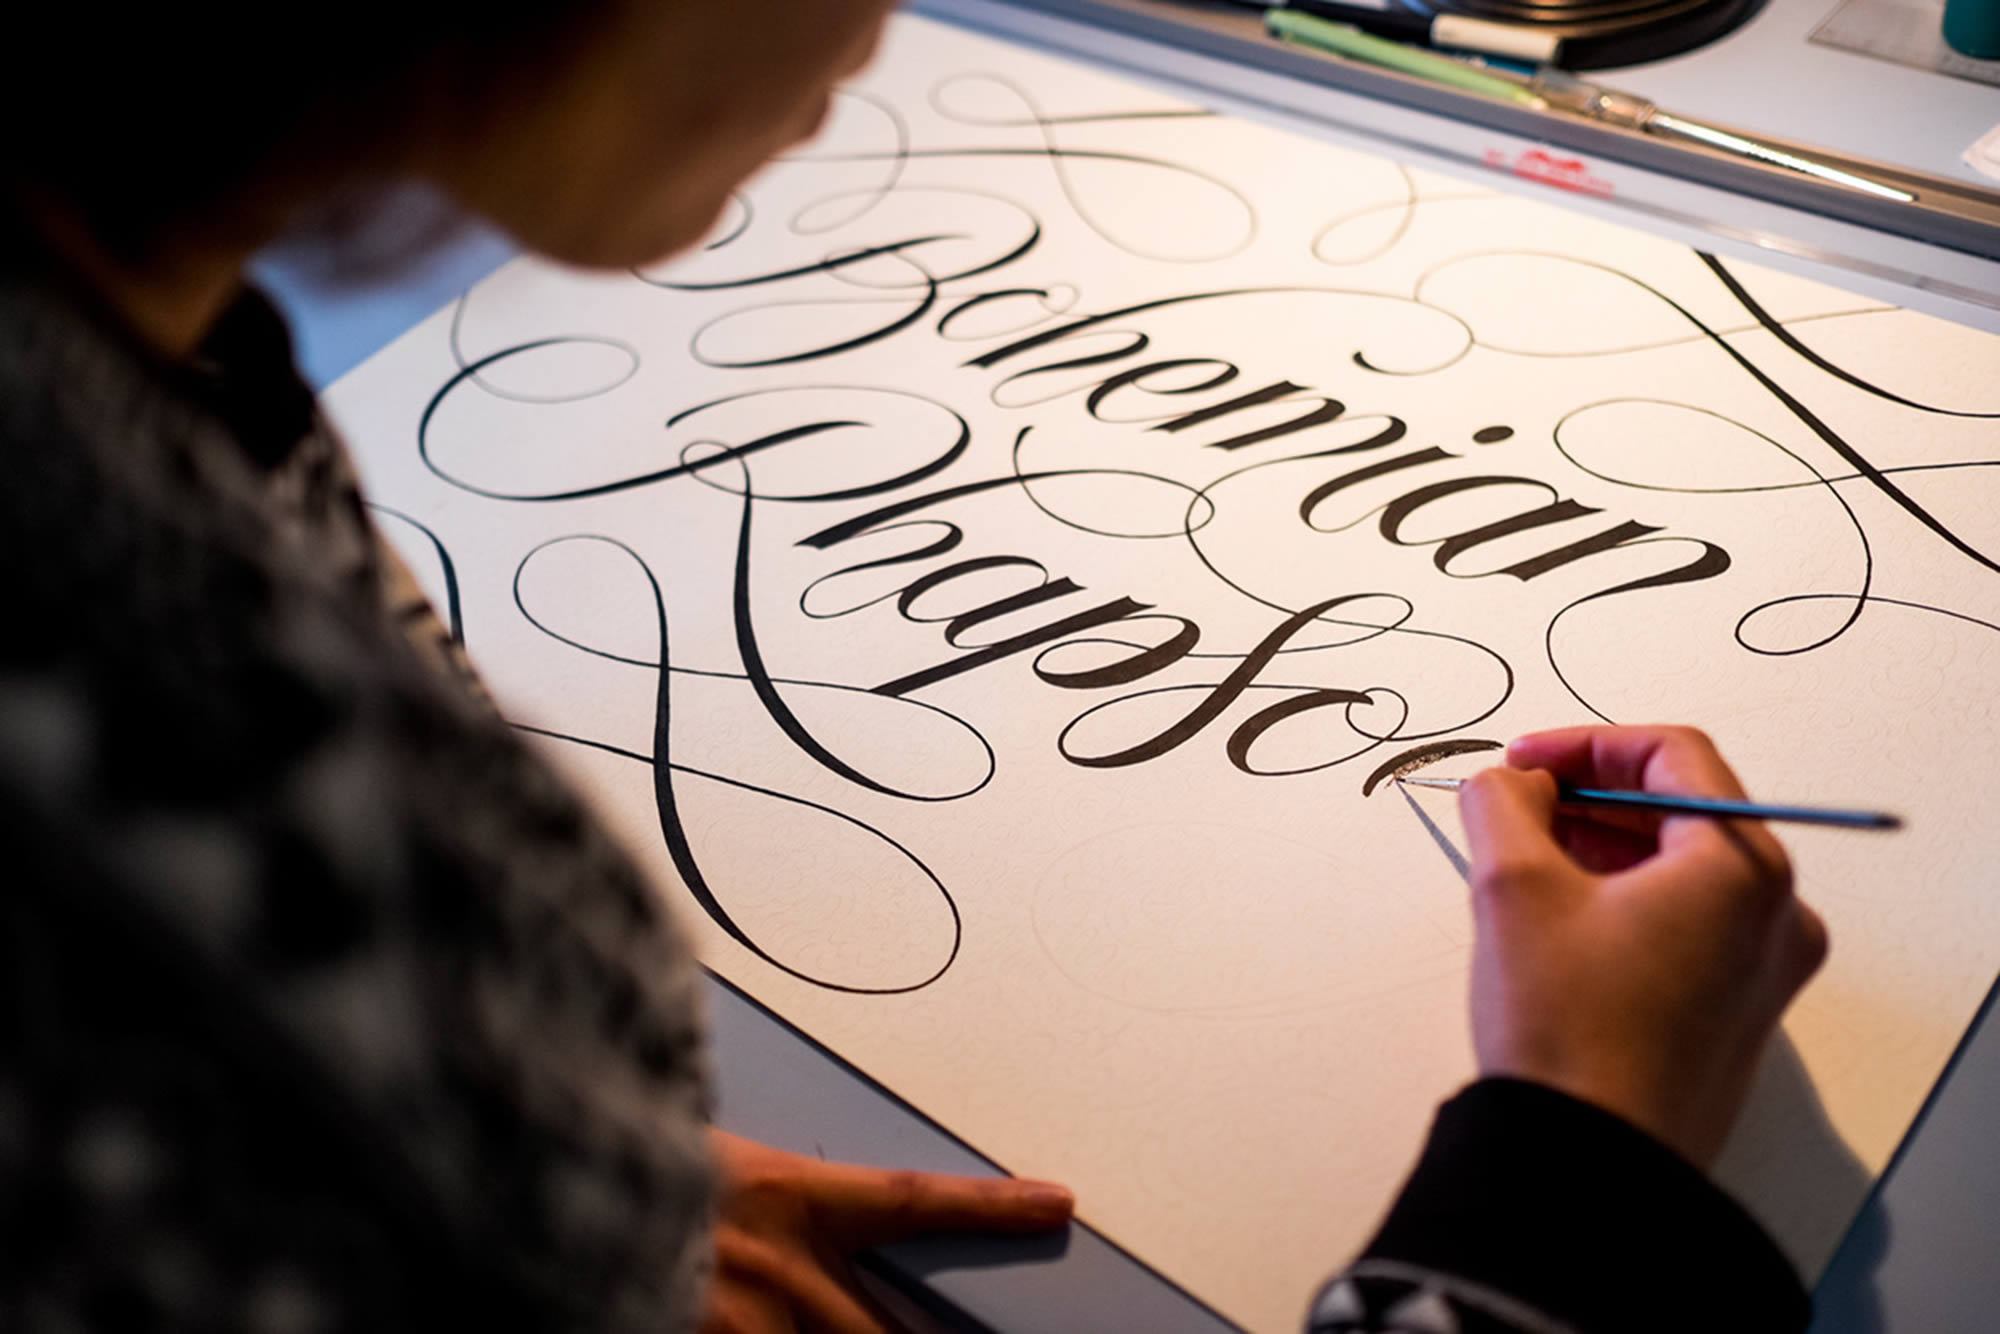 Cyla Costa's Elegant Lettering on Paper, City Streets, and Storefronts